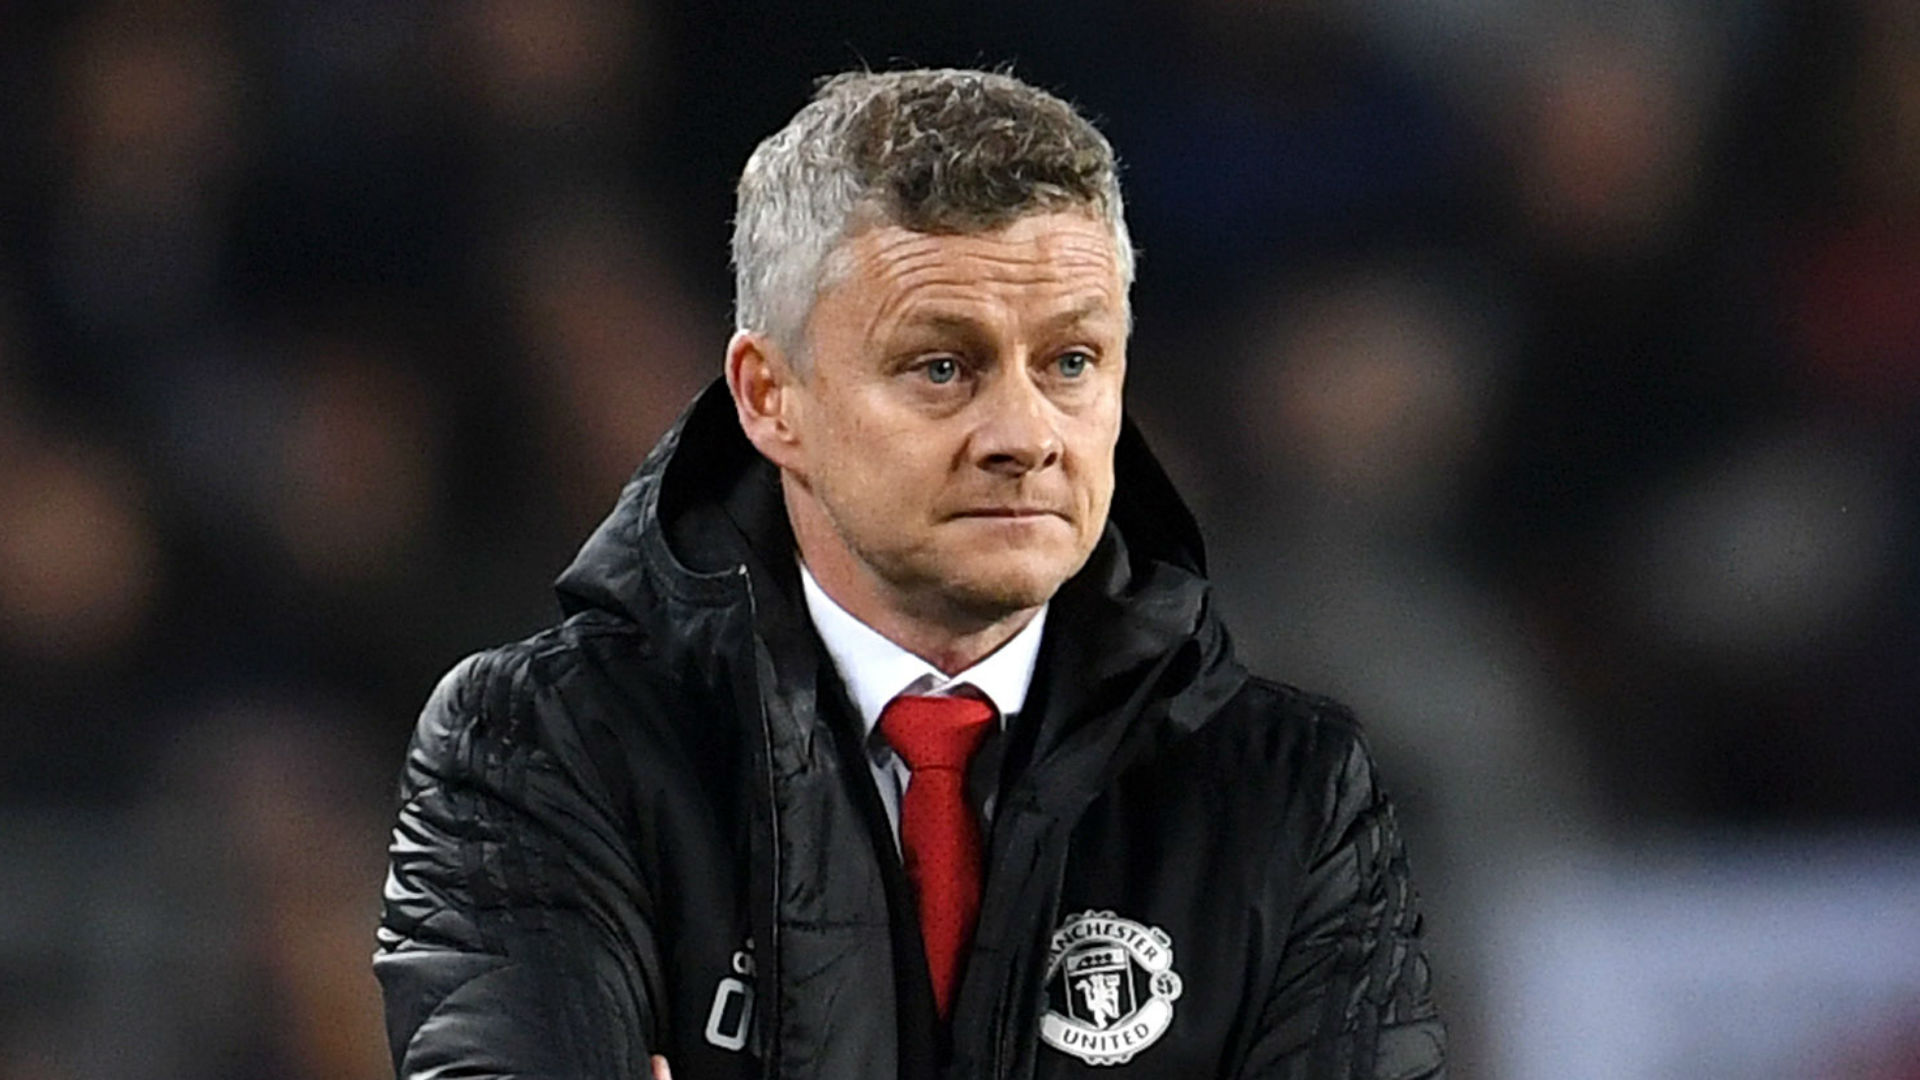 Manchester United's executive vice-chairman Ed Woodward has promised financial backing to manager Ole Gunnar Solskjaer.